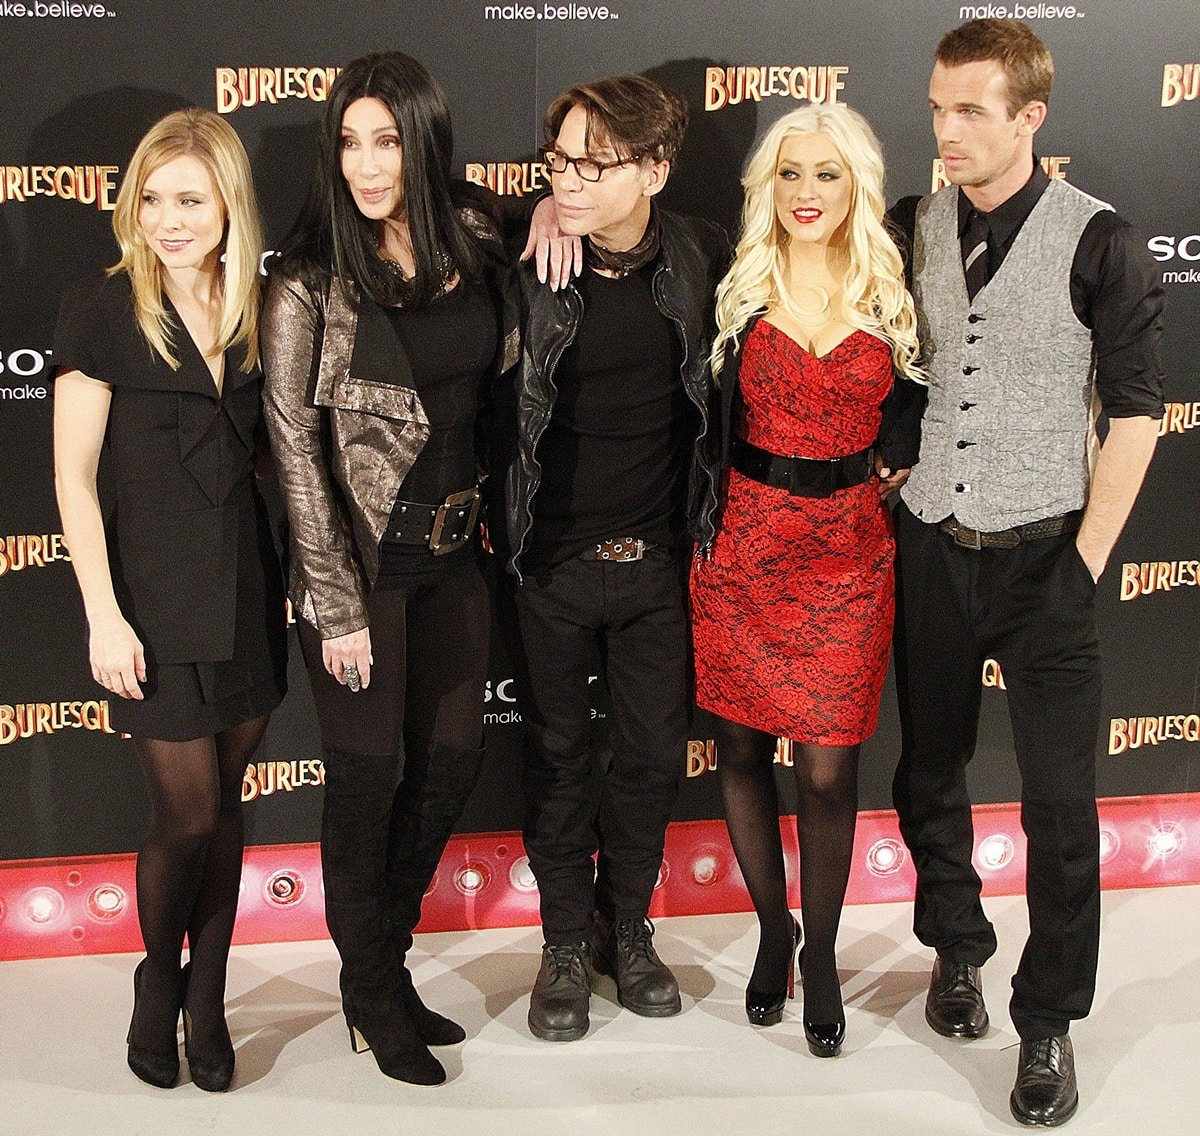 Actresses Kristen Bell, Cher, director Steven Antin, Christina Aguilera and actor Cam Gigandet photocall for the movie Burlesque